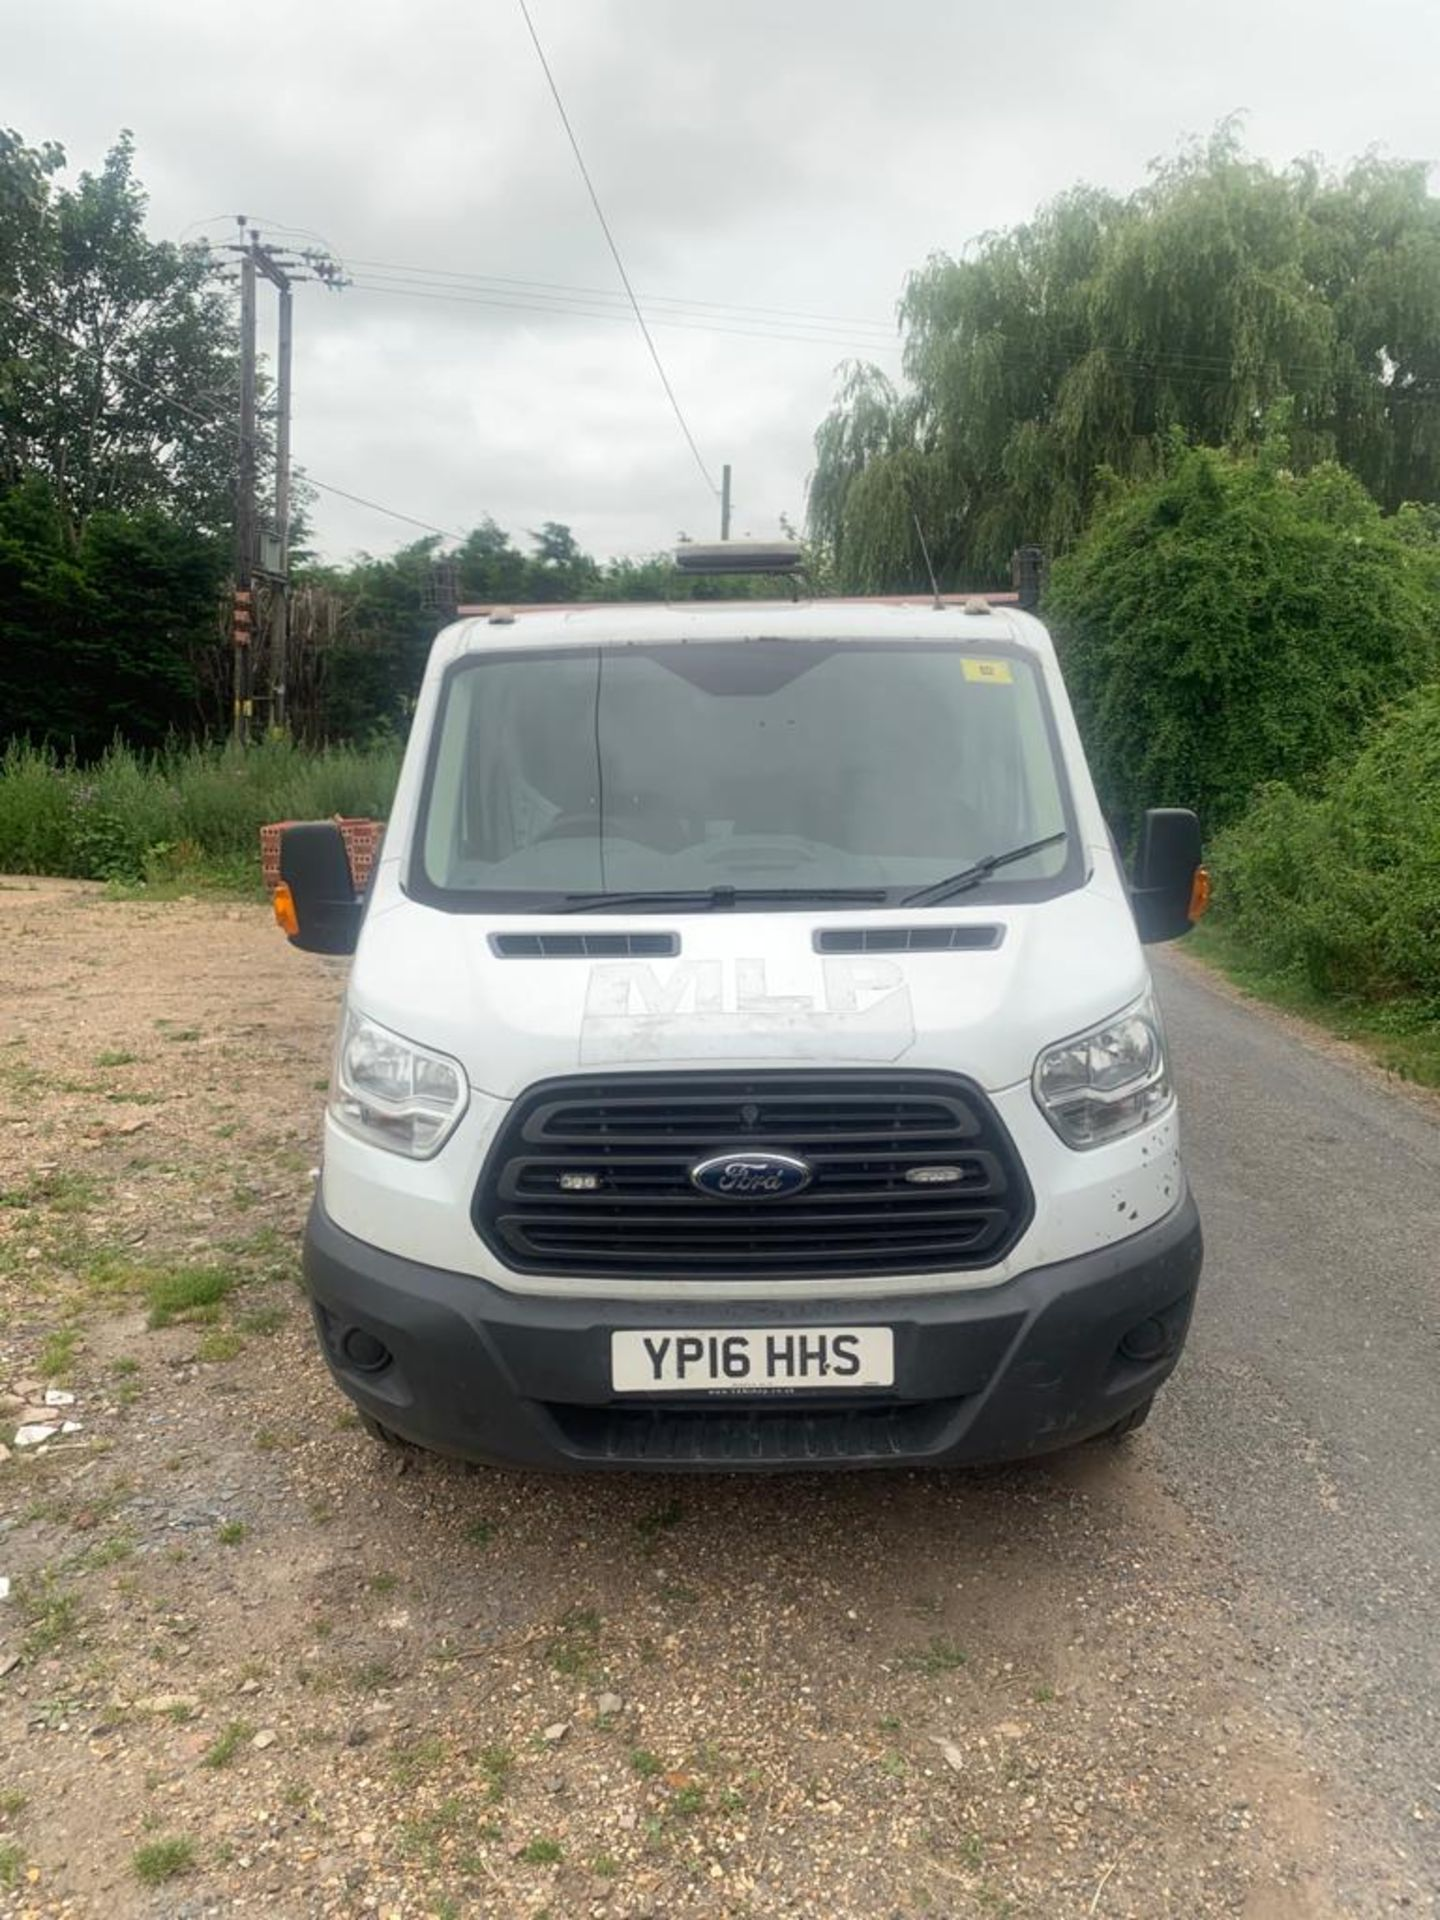 2016 FORD TRANSIT 350 DROPSIDE TAIL LIFT ALUMINUM BODY - Image 2 of 20